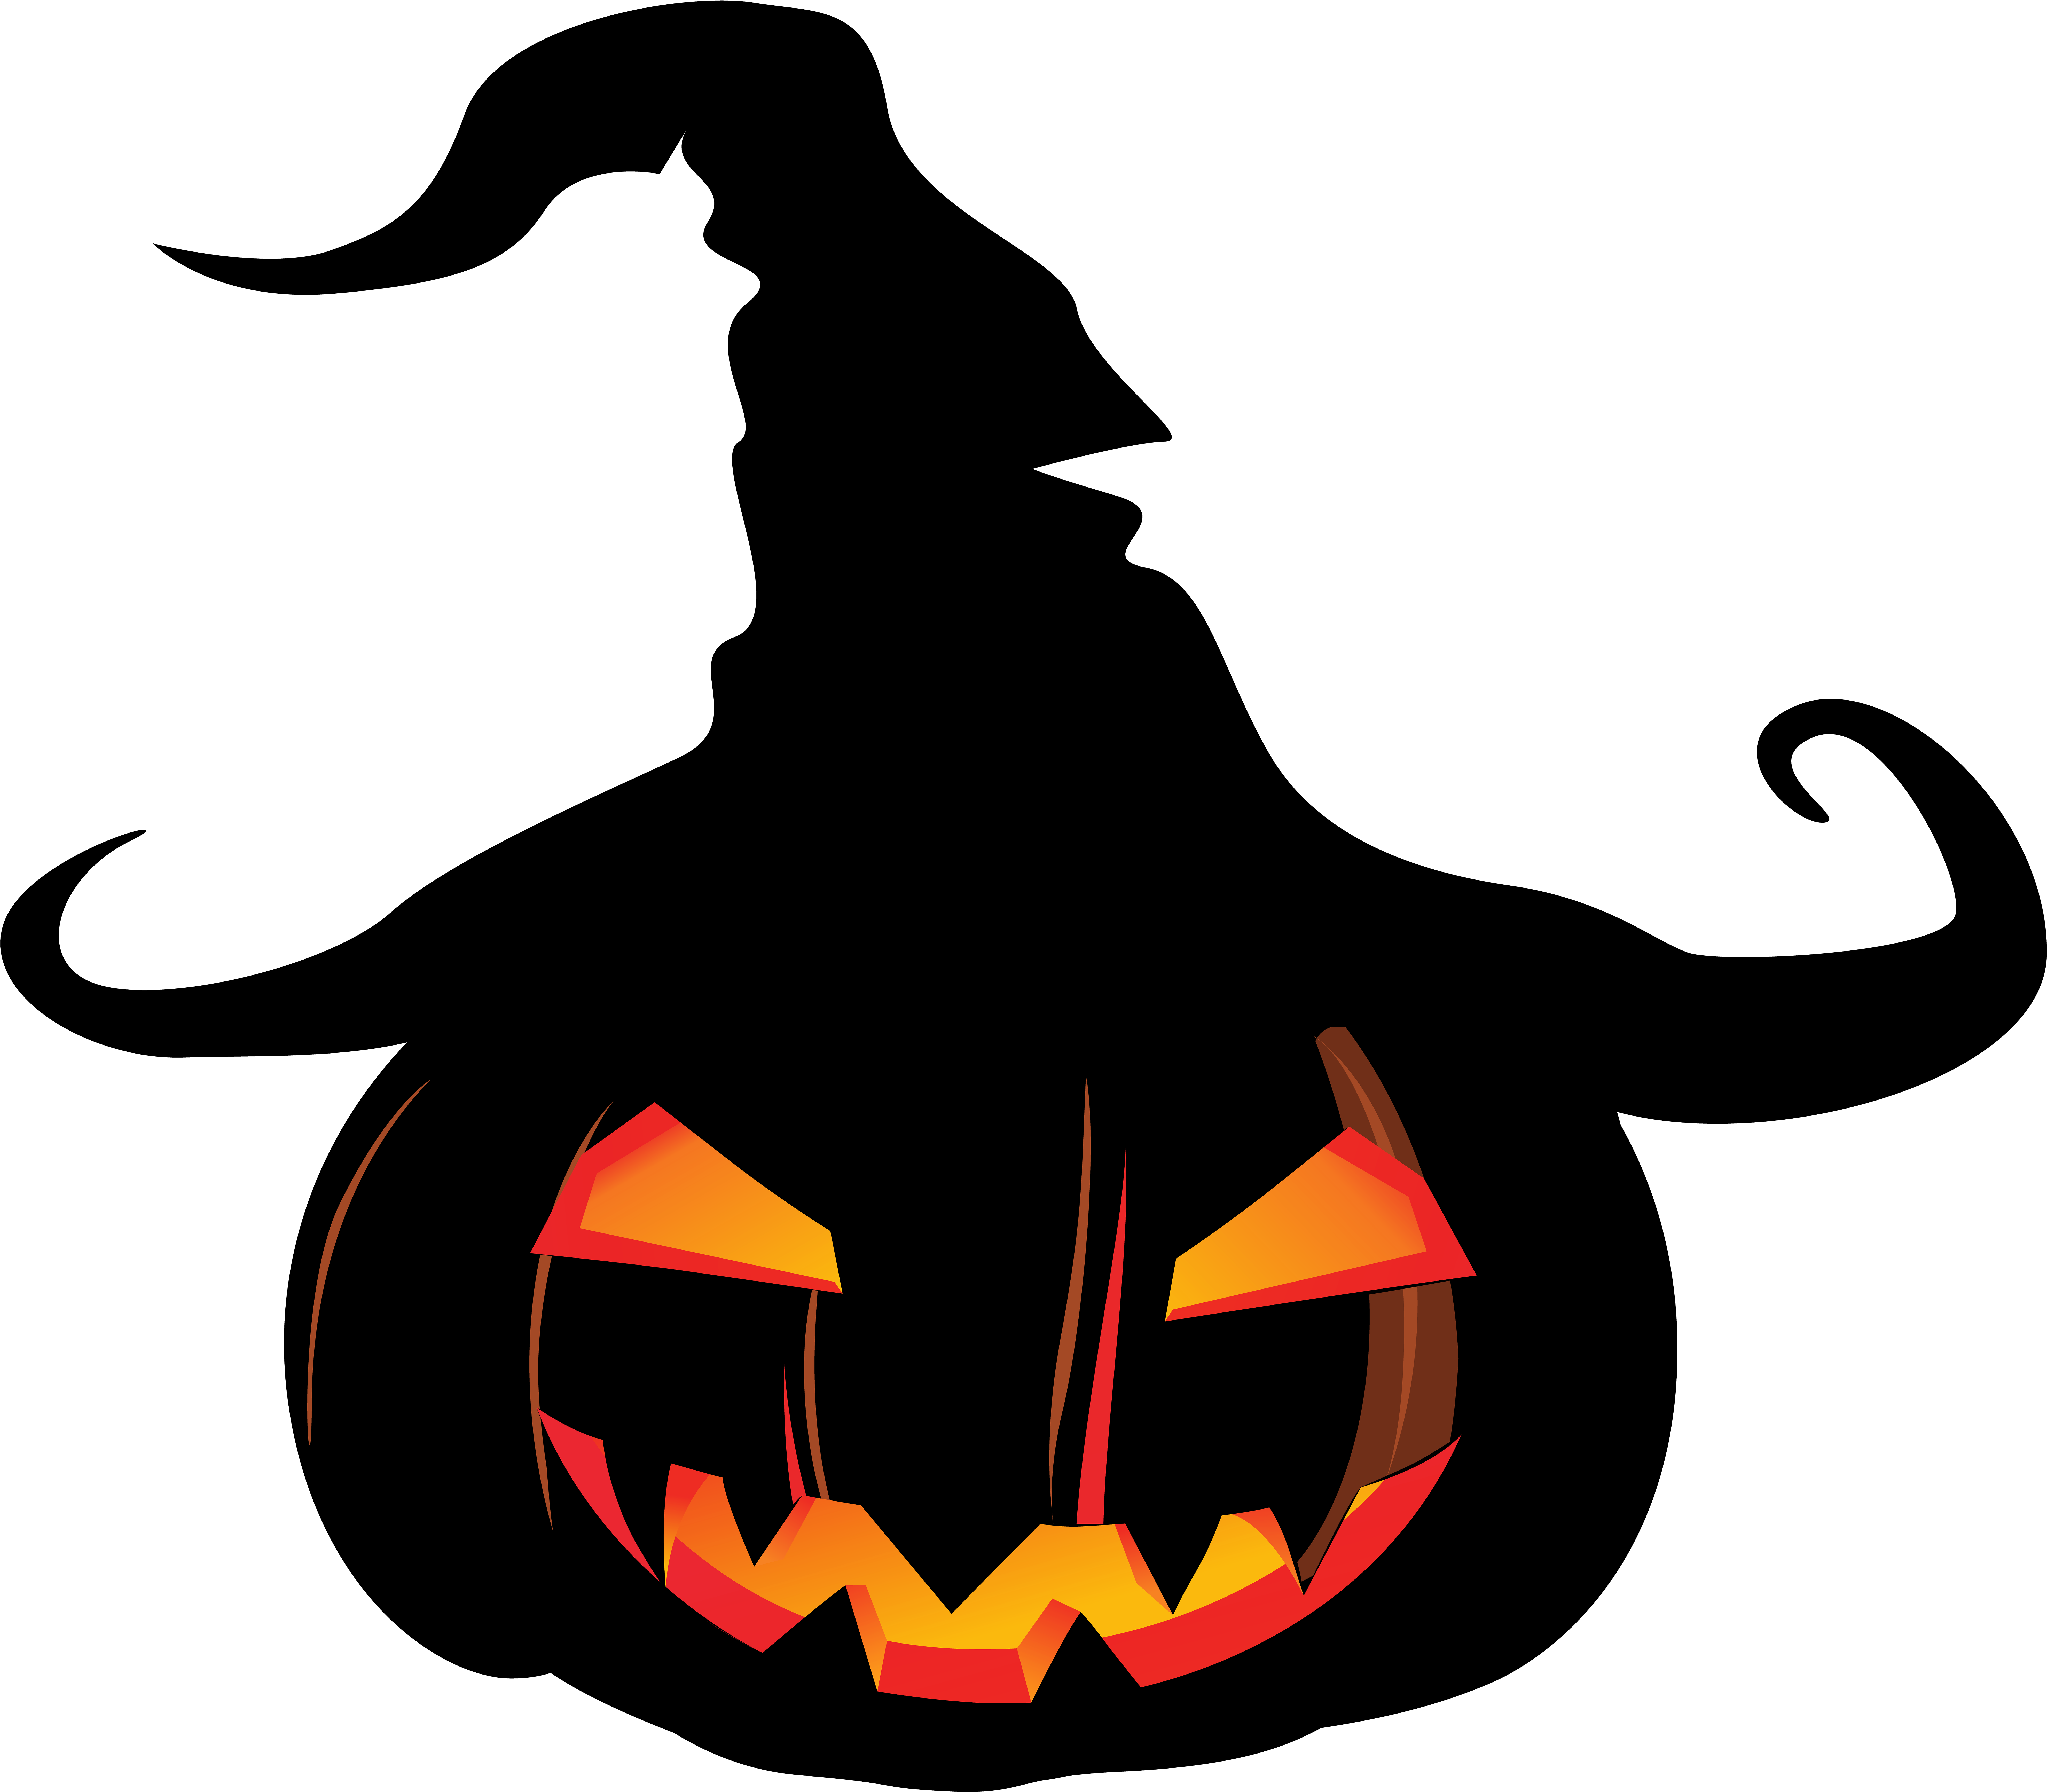 Scary Pumpkin With Witch Hat Clipart.